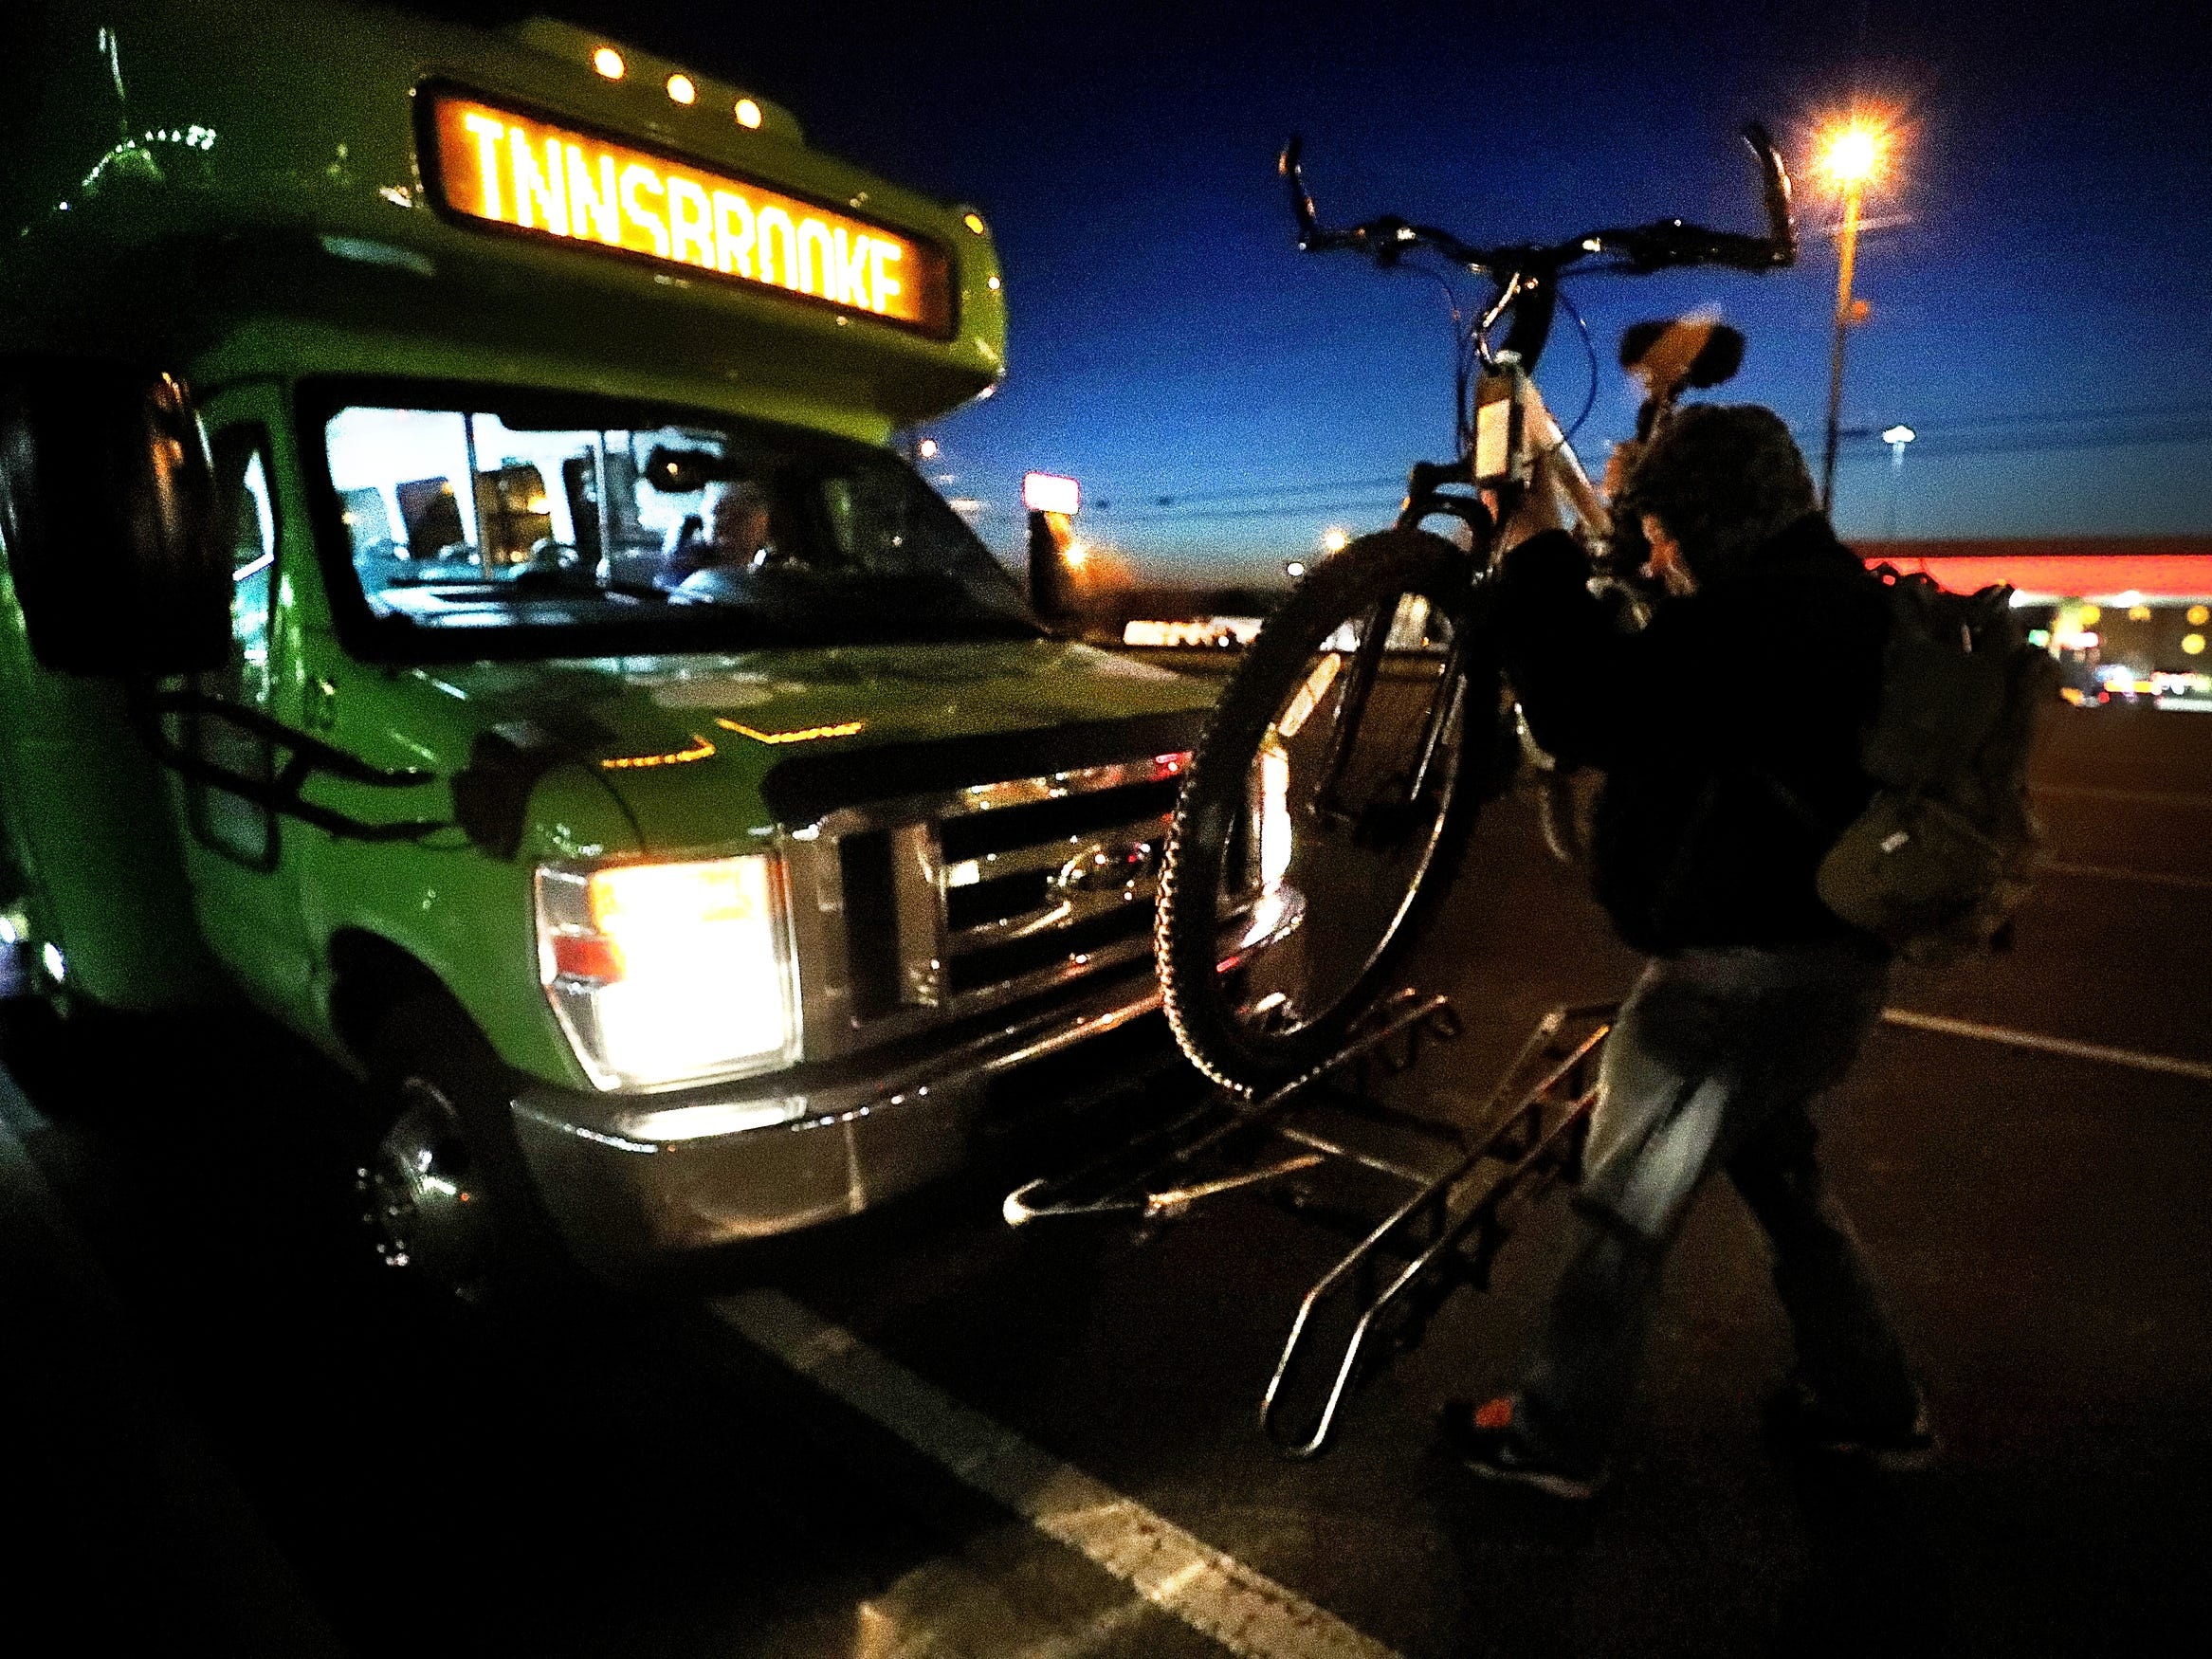 Daniel Zienkiewicz removes his bike from the front of the Rover bus at his stop on South Church Street before he continues to cross seven lanes of traffic and ride for 2 more miles before arriving at his job. Zienkiewicz was told by passengers on this morning commute that a pedestrian had been hit and killed crossing this highway the night before.